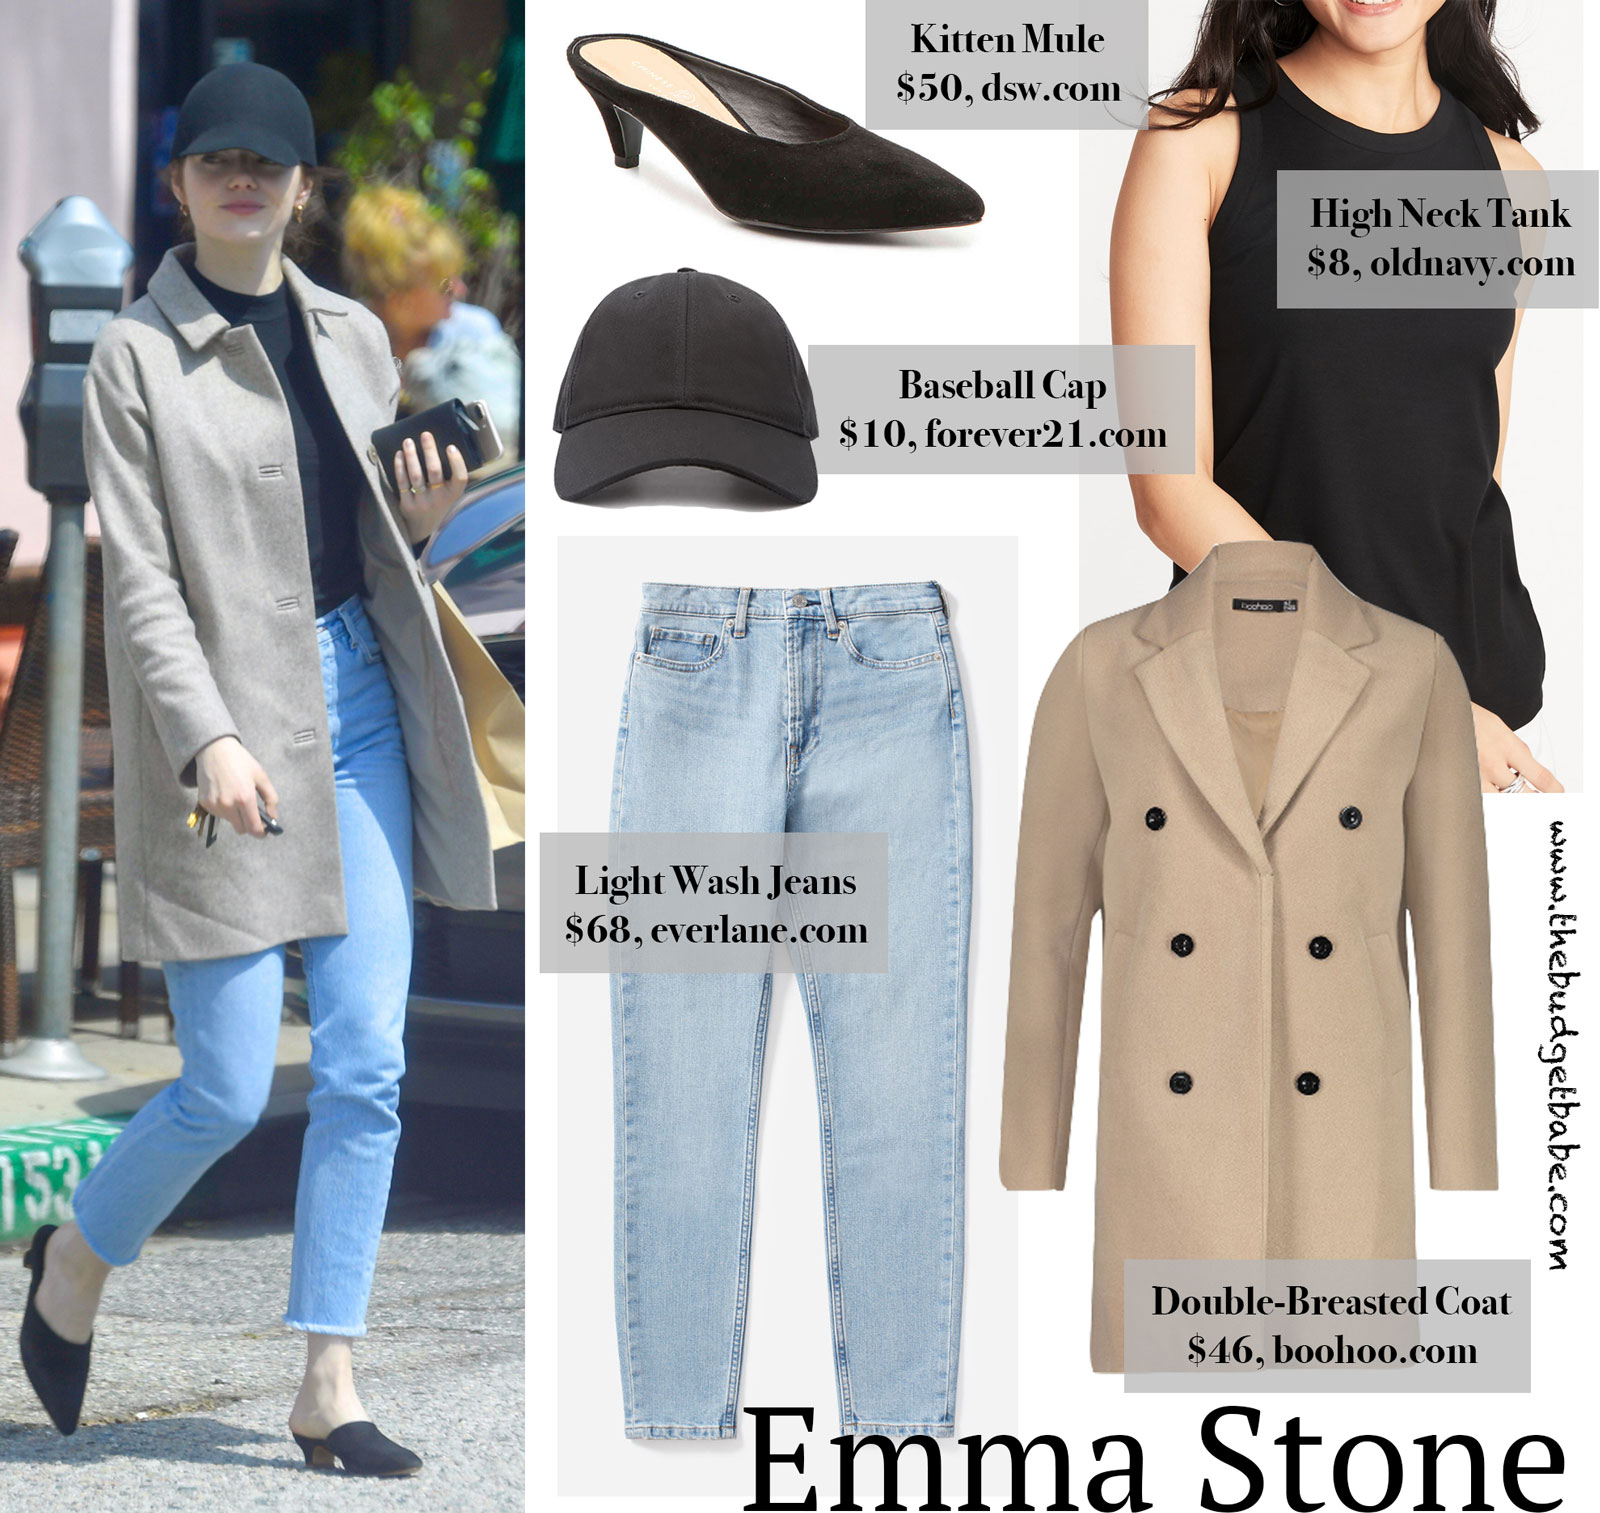 Emma Stone Tan Coat Baseball Cap Look for Less